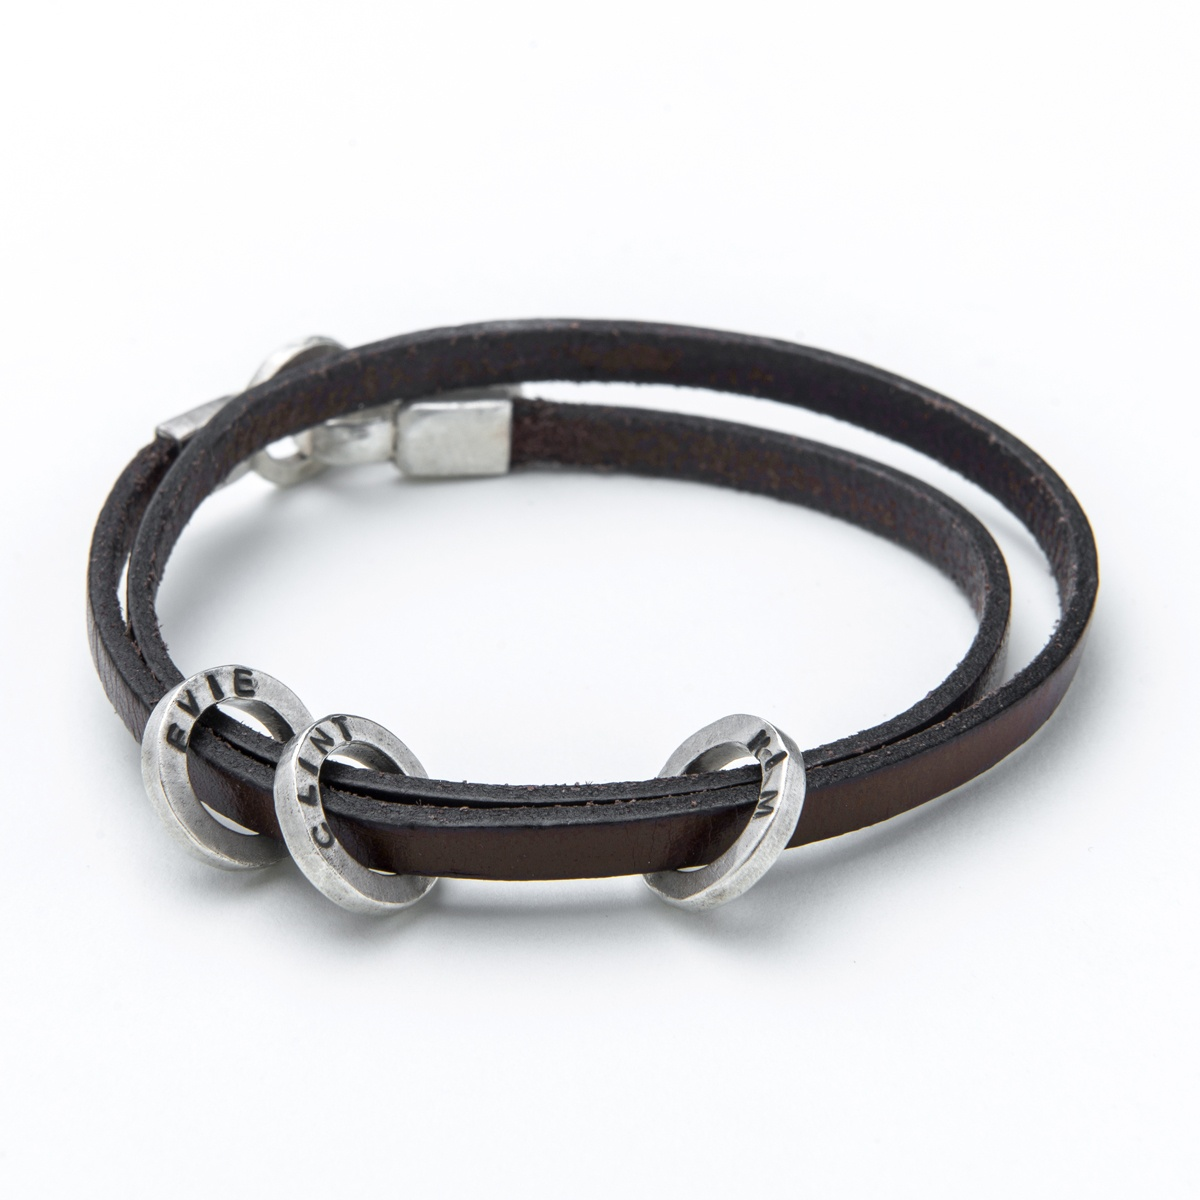 Leather Bracelet With Charms: Leather And Silver Mens Bracelet With 3 Charms To Add